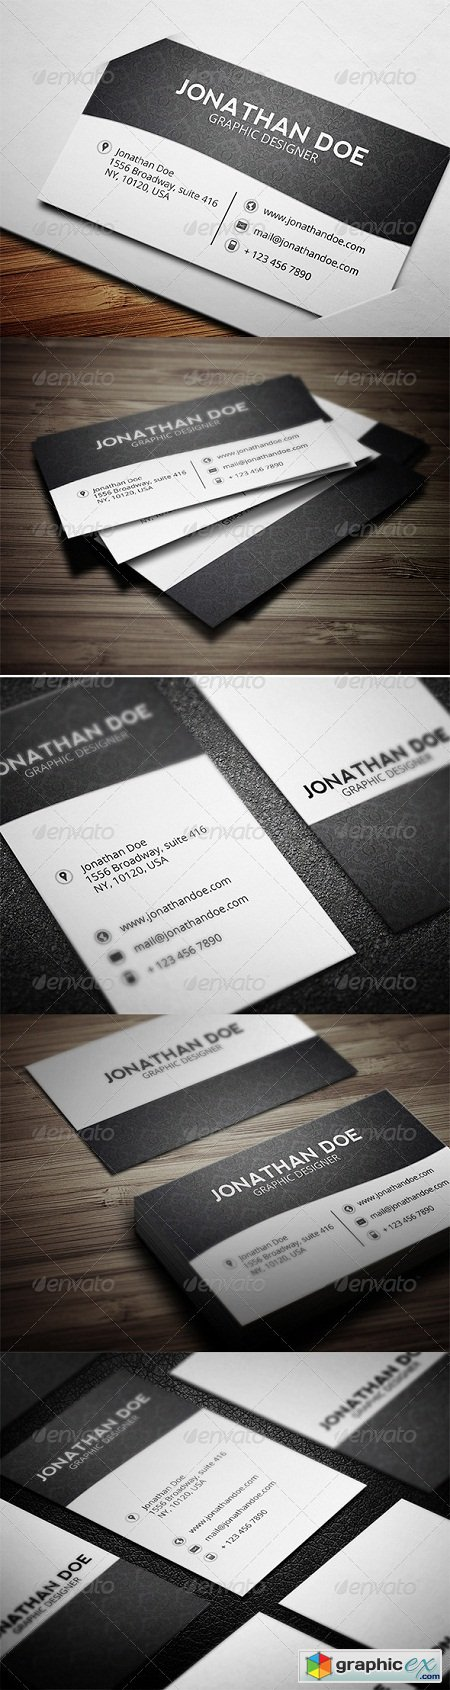 Creative Business Card 3643115